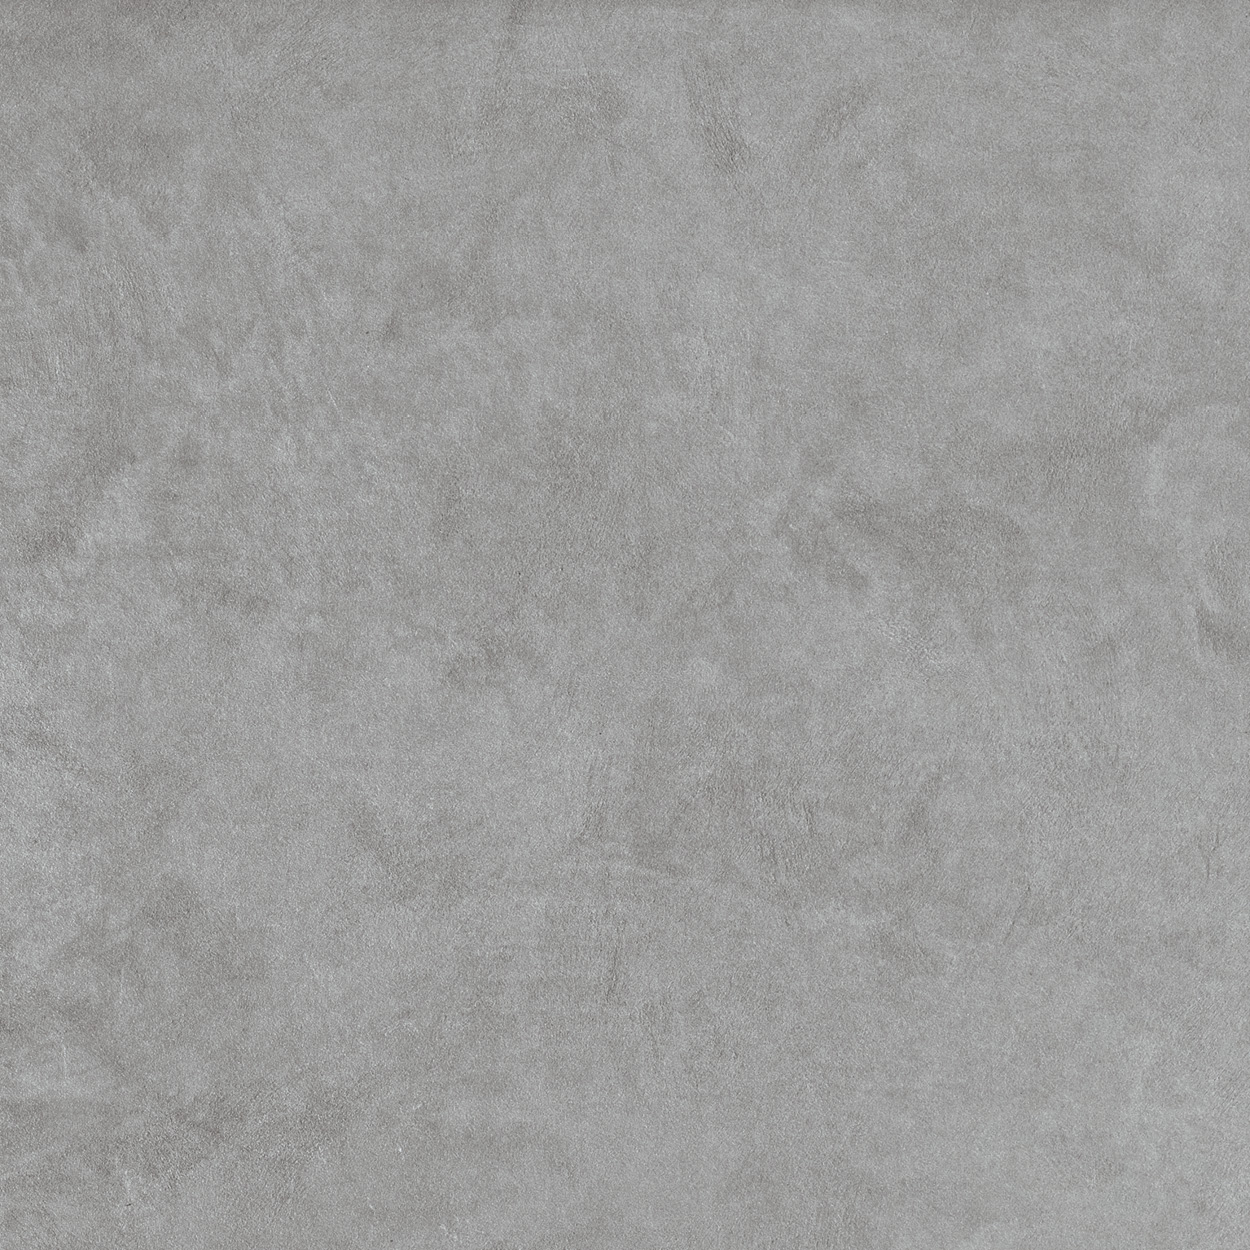 24 x 24 Seamless CL_01 Porcelain tile